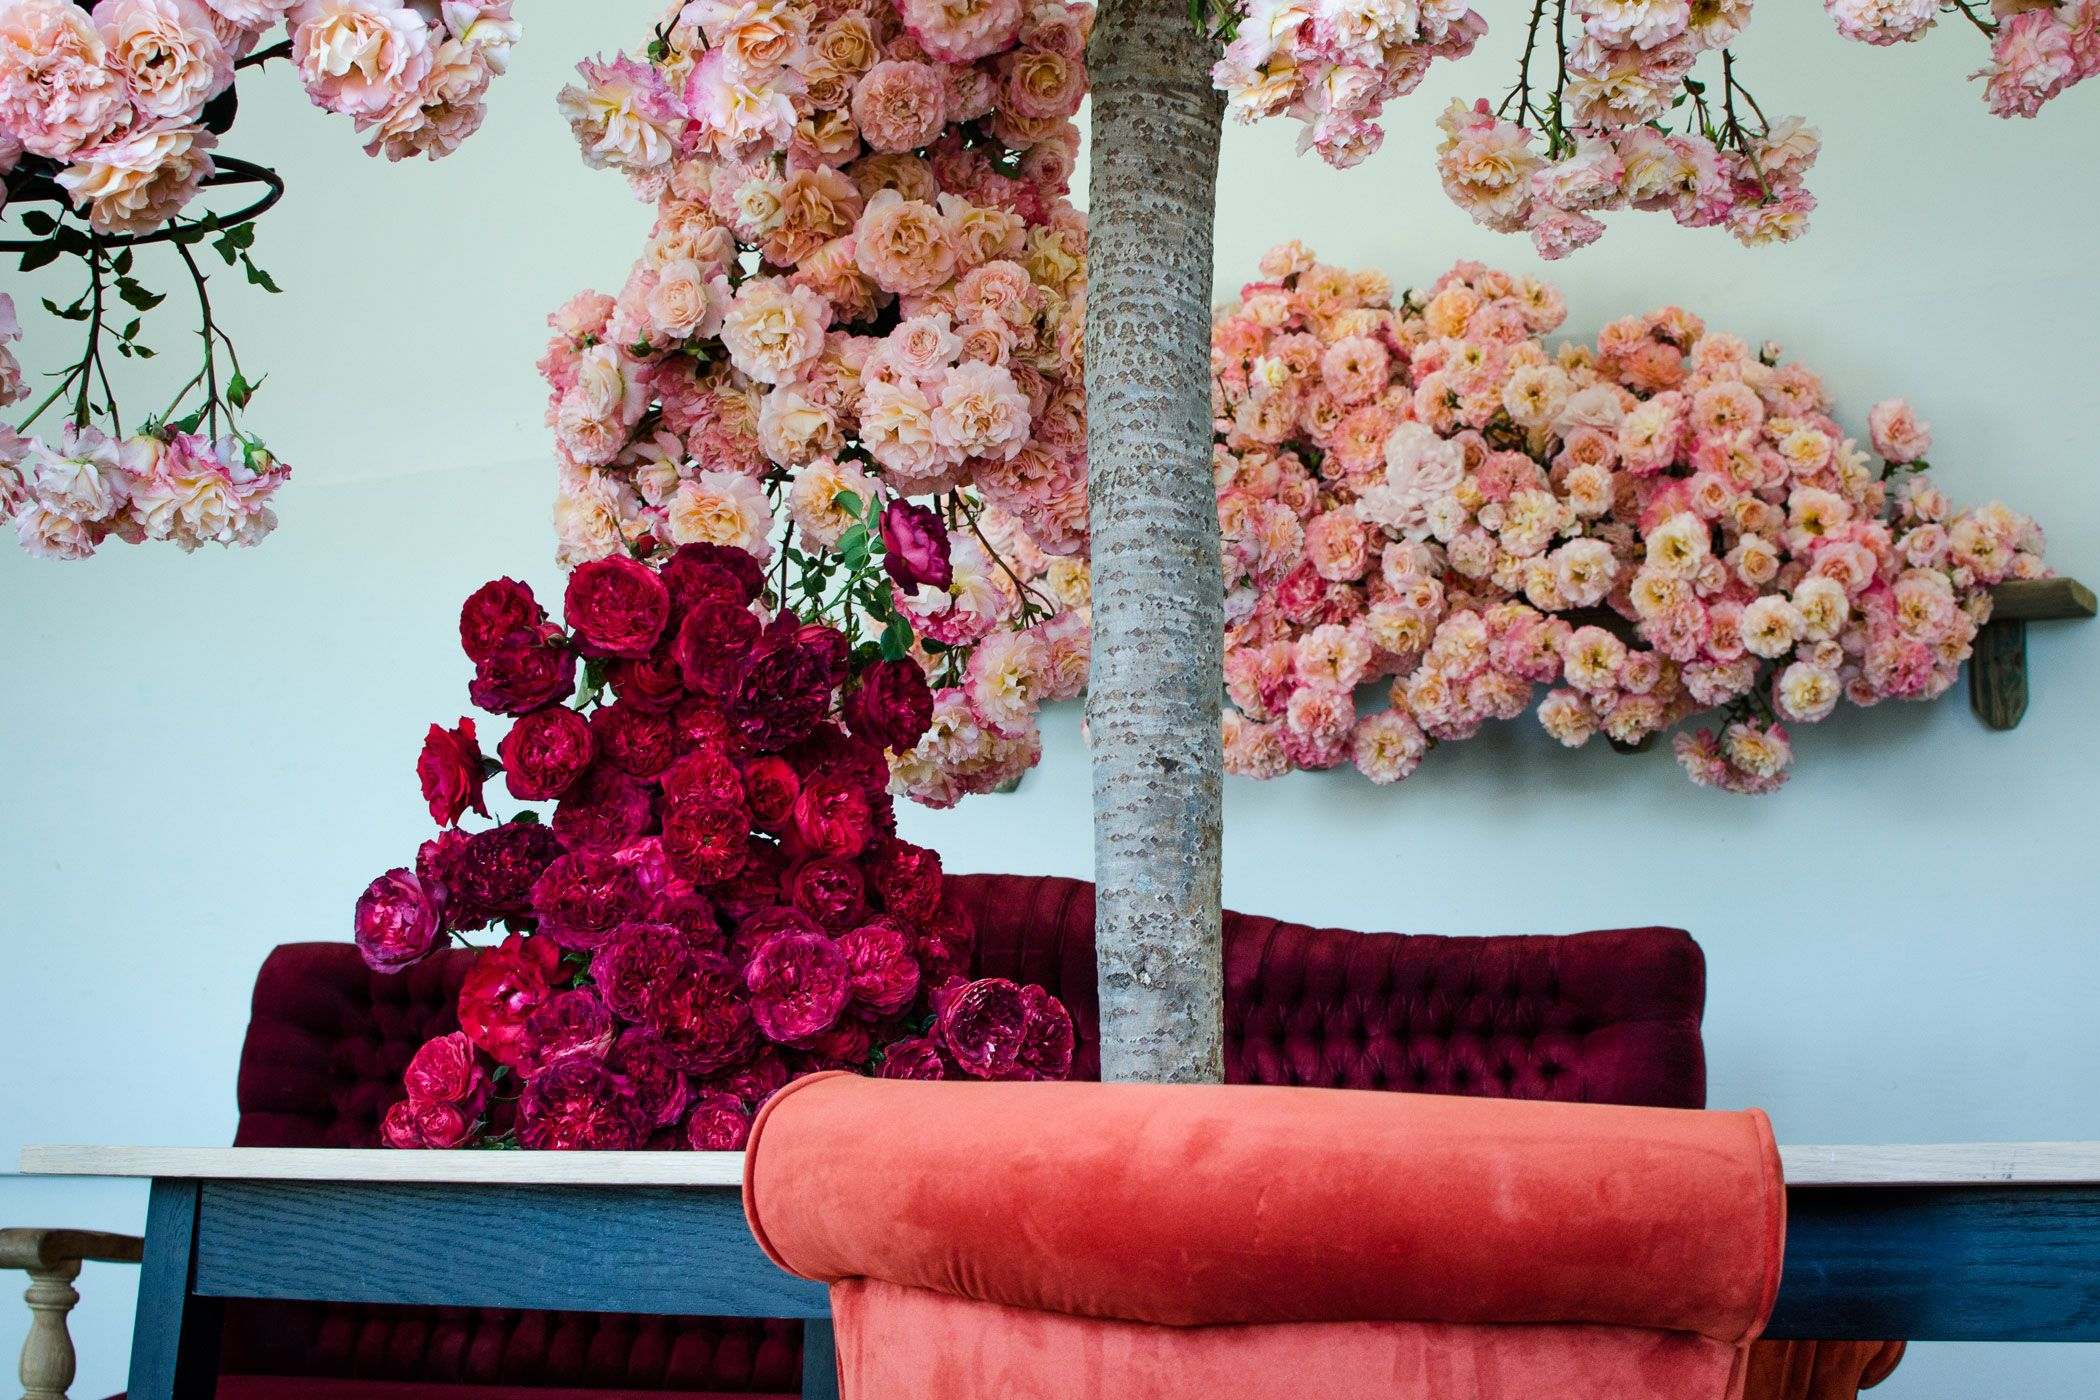 Home okasie passion for floral art as we continuously aspire to capture the essence and fleeting beauty of flowers okasie 85 dorp street stellenbosch tel izmirmasajfo